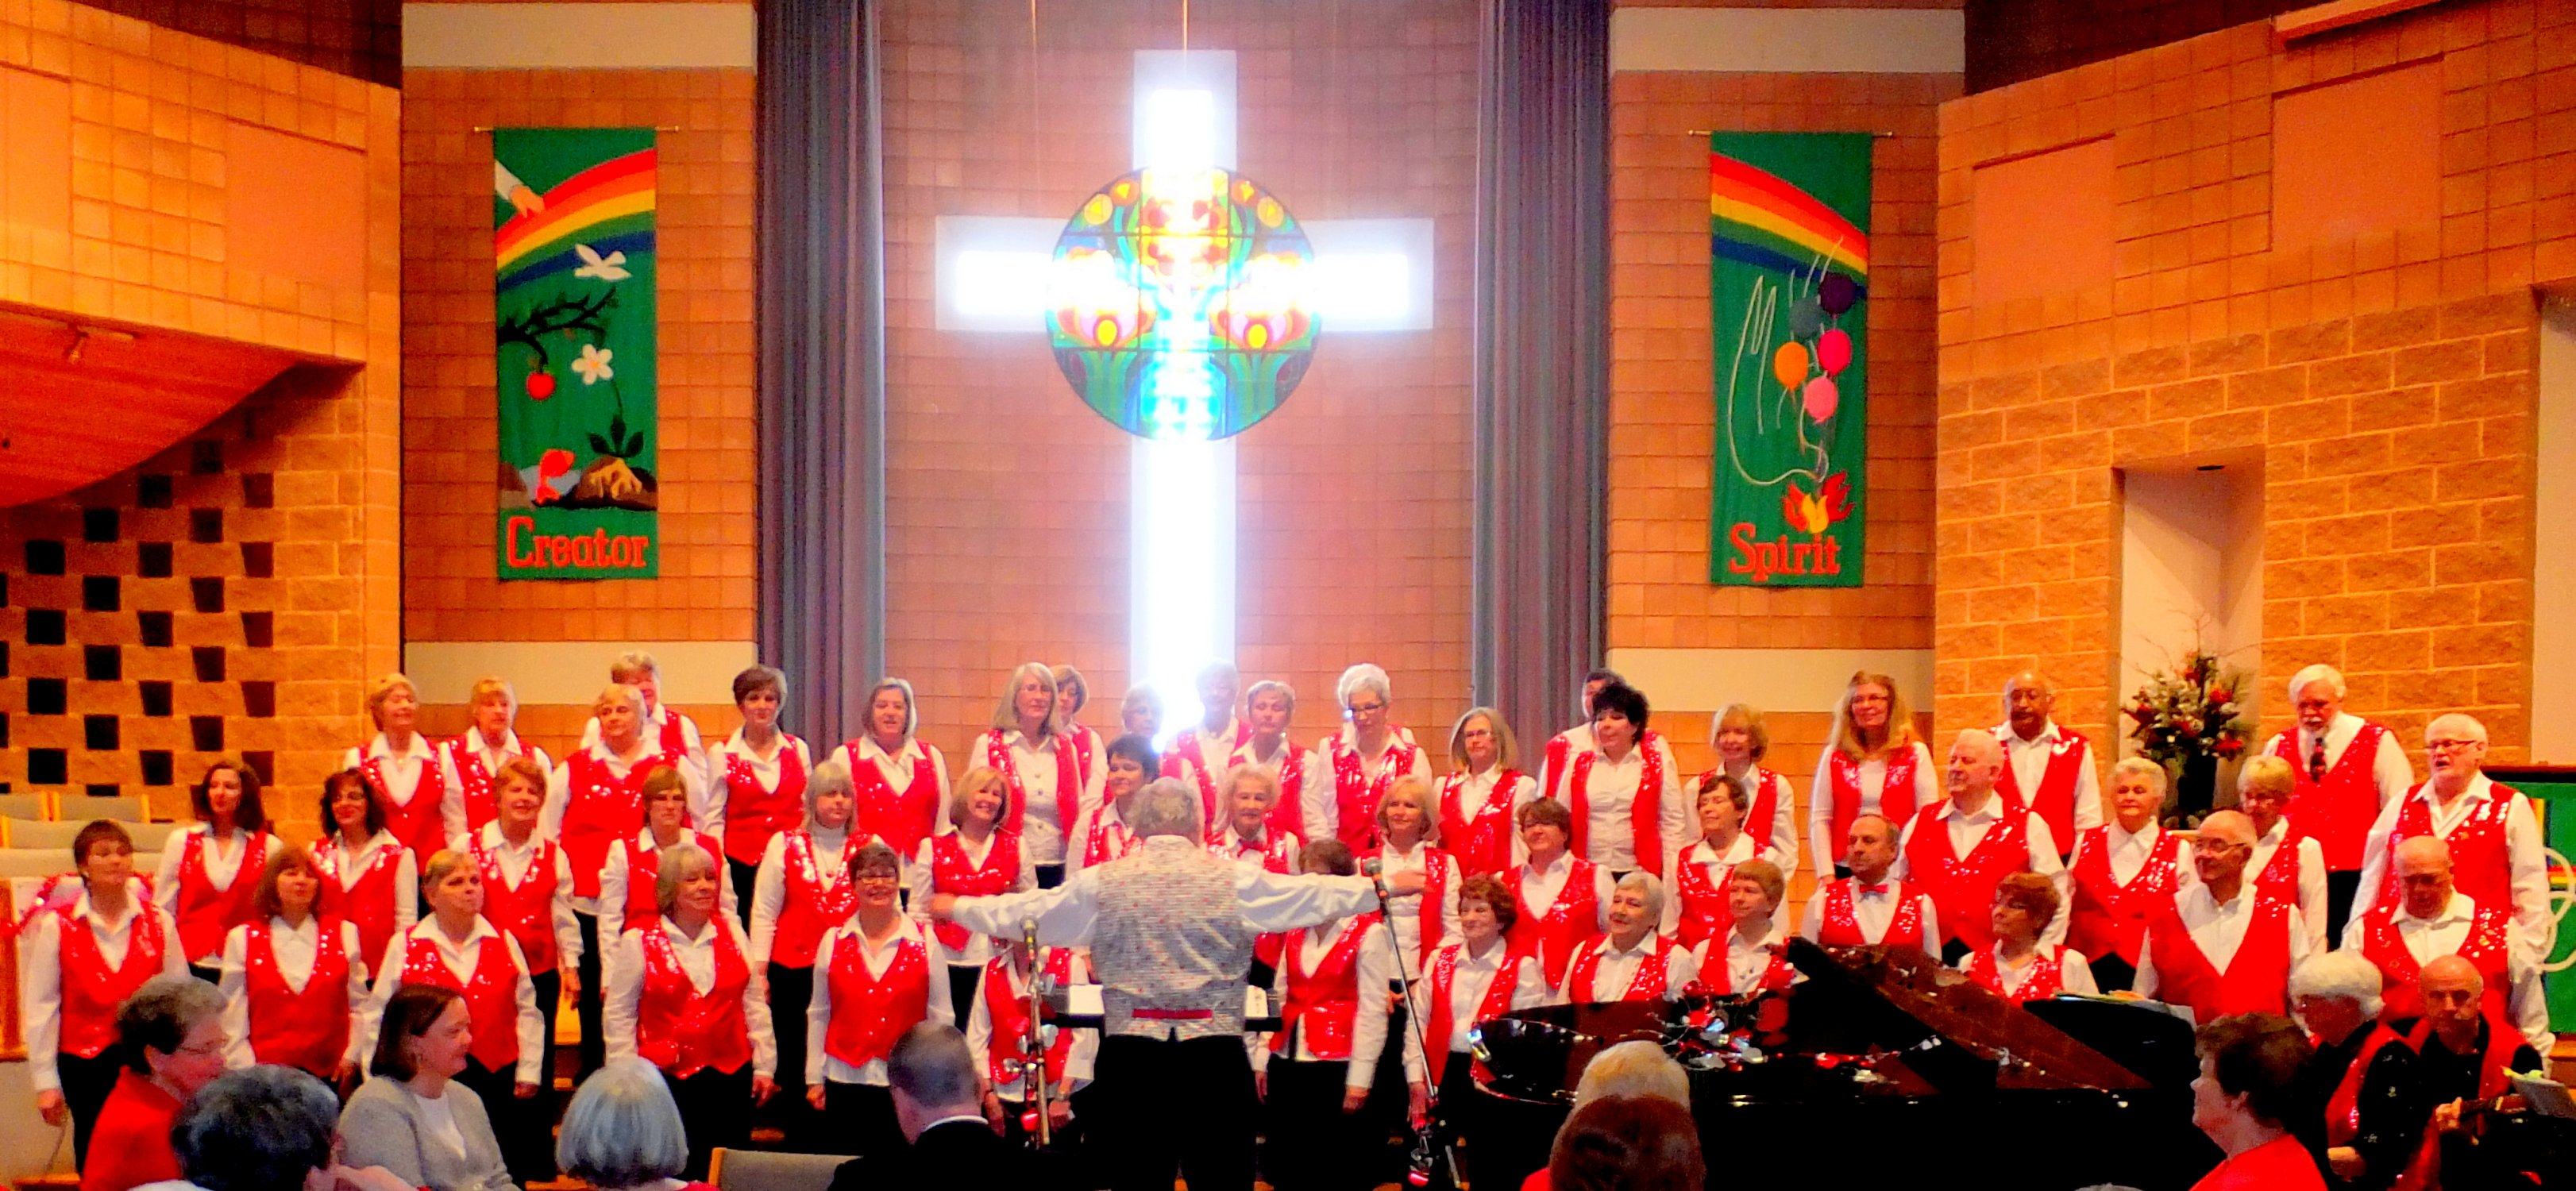 Justus Choir Streetsville Musicorp photo by I Lee, Justus Valentine's Tea at Eden United Church, 14 Feb 2015